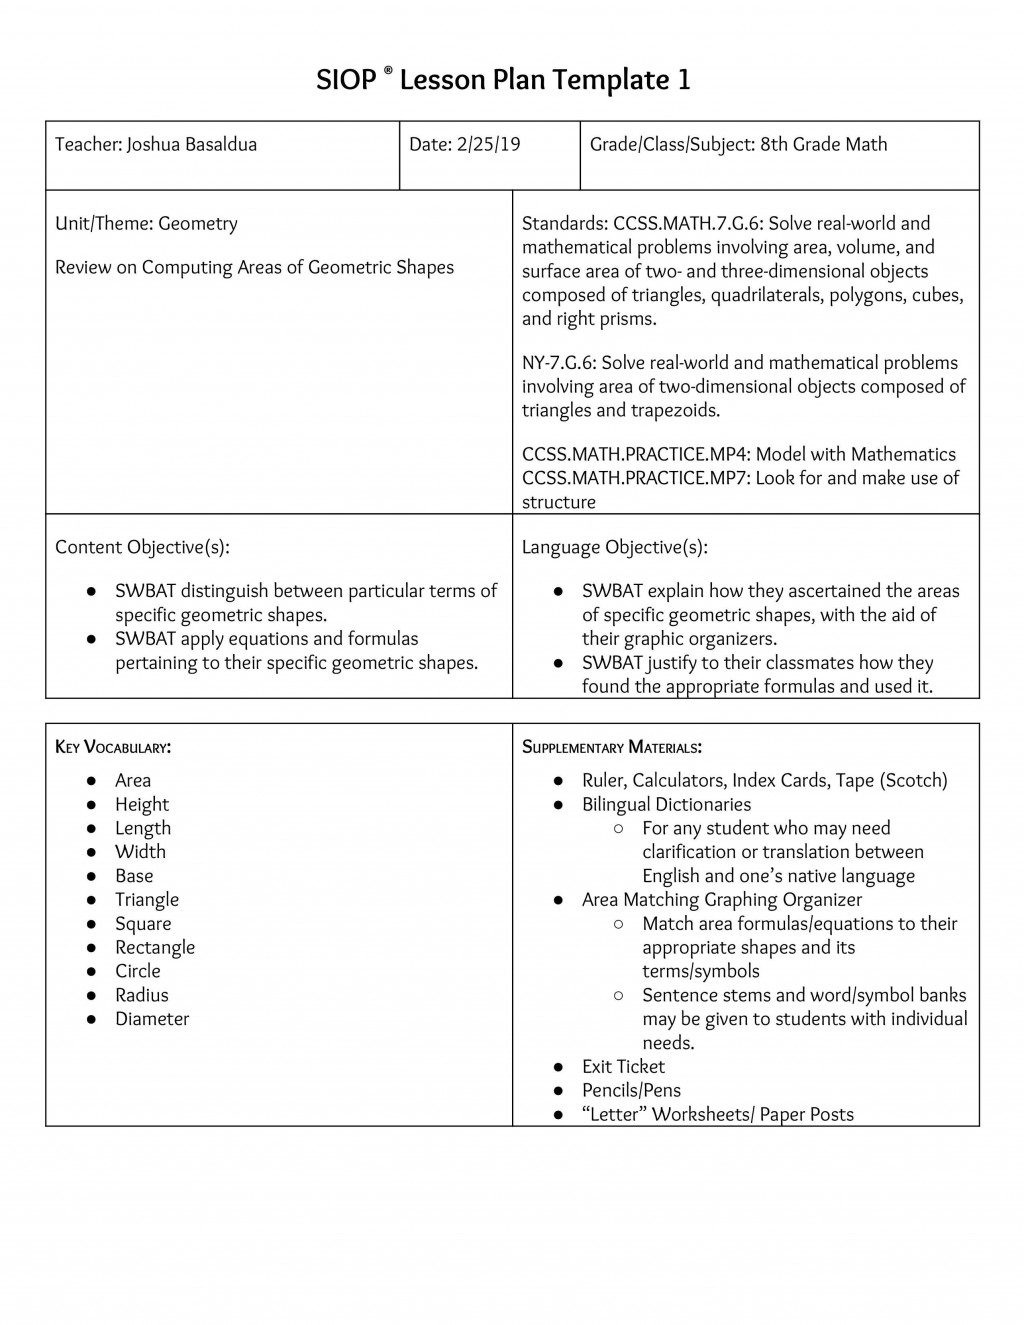 000 Shocking Siop Lesson Plan Template 1 Example High Resolution Large